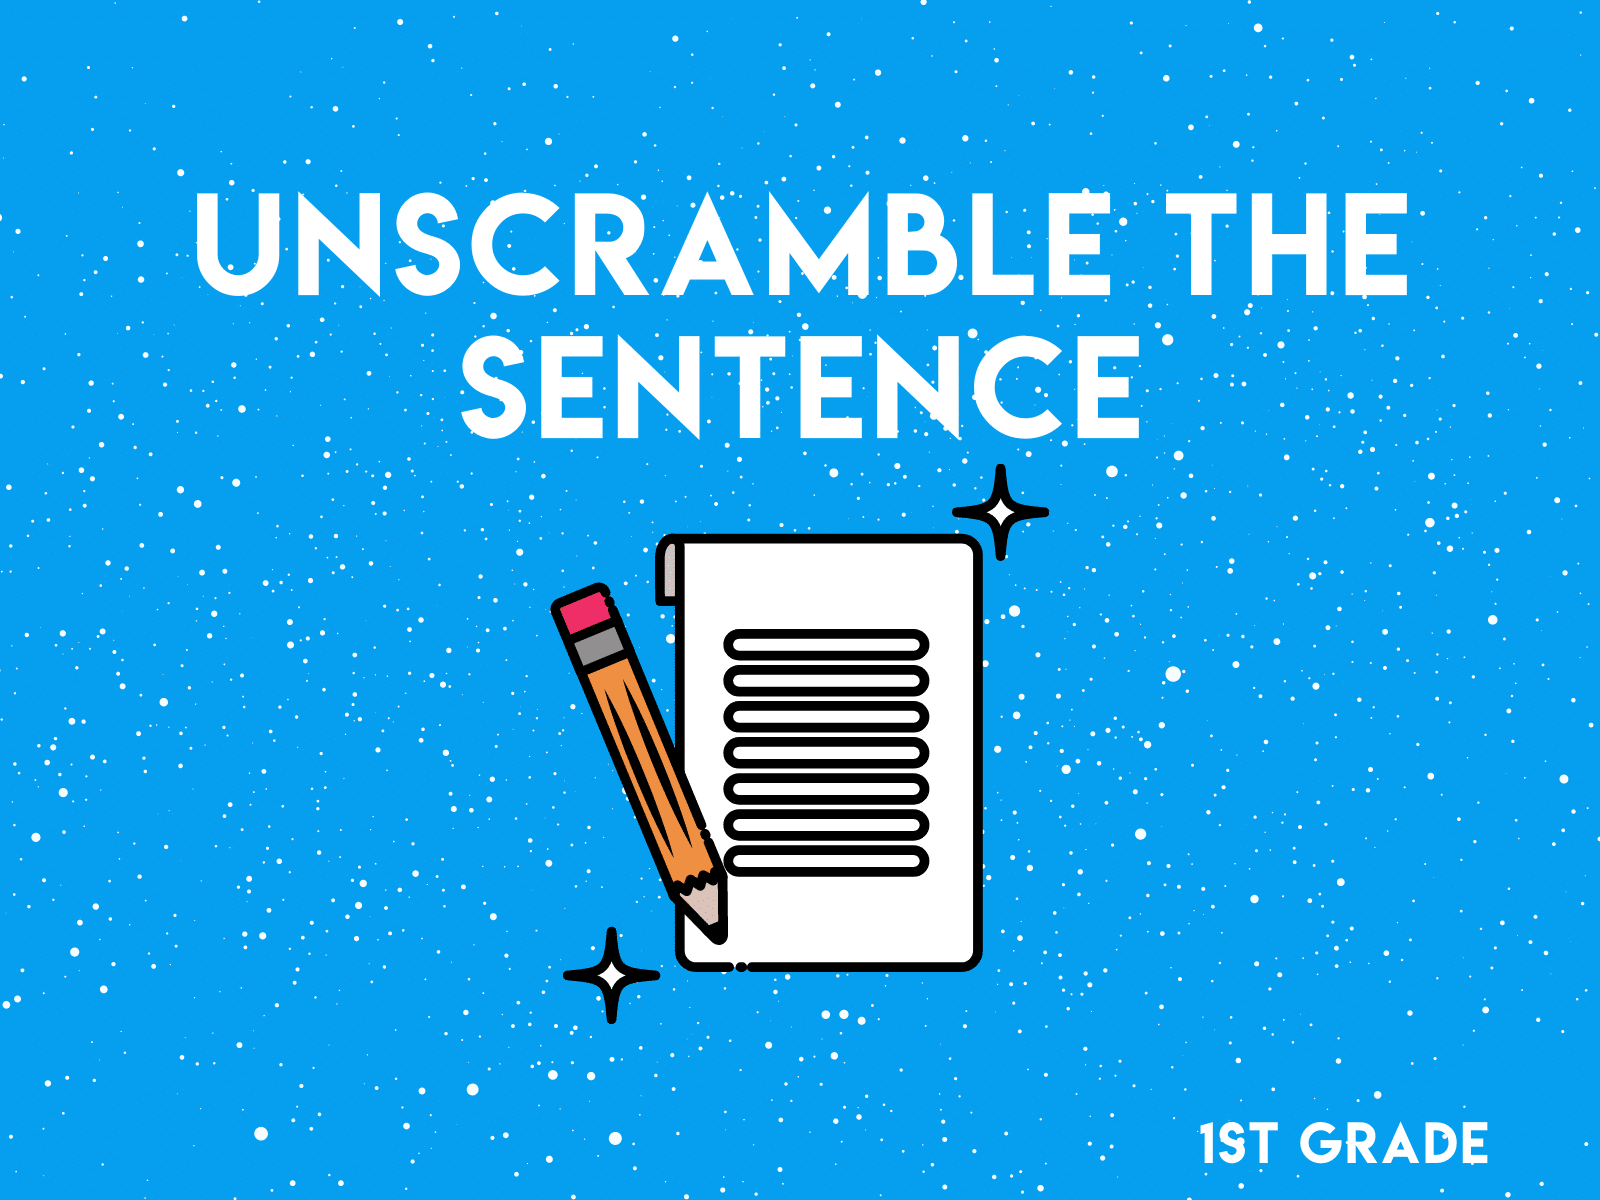 Unscramble the sentence activity for first grade writing practice.